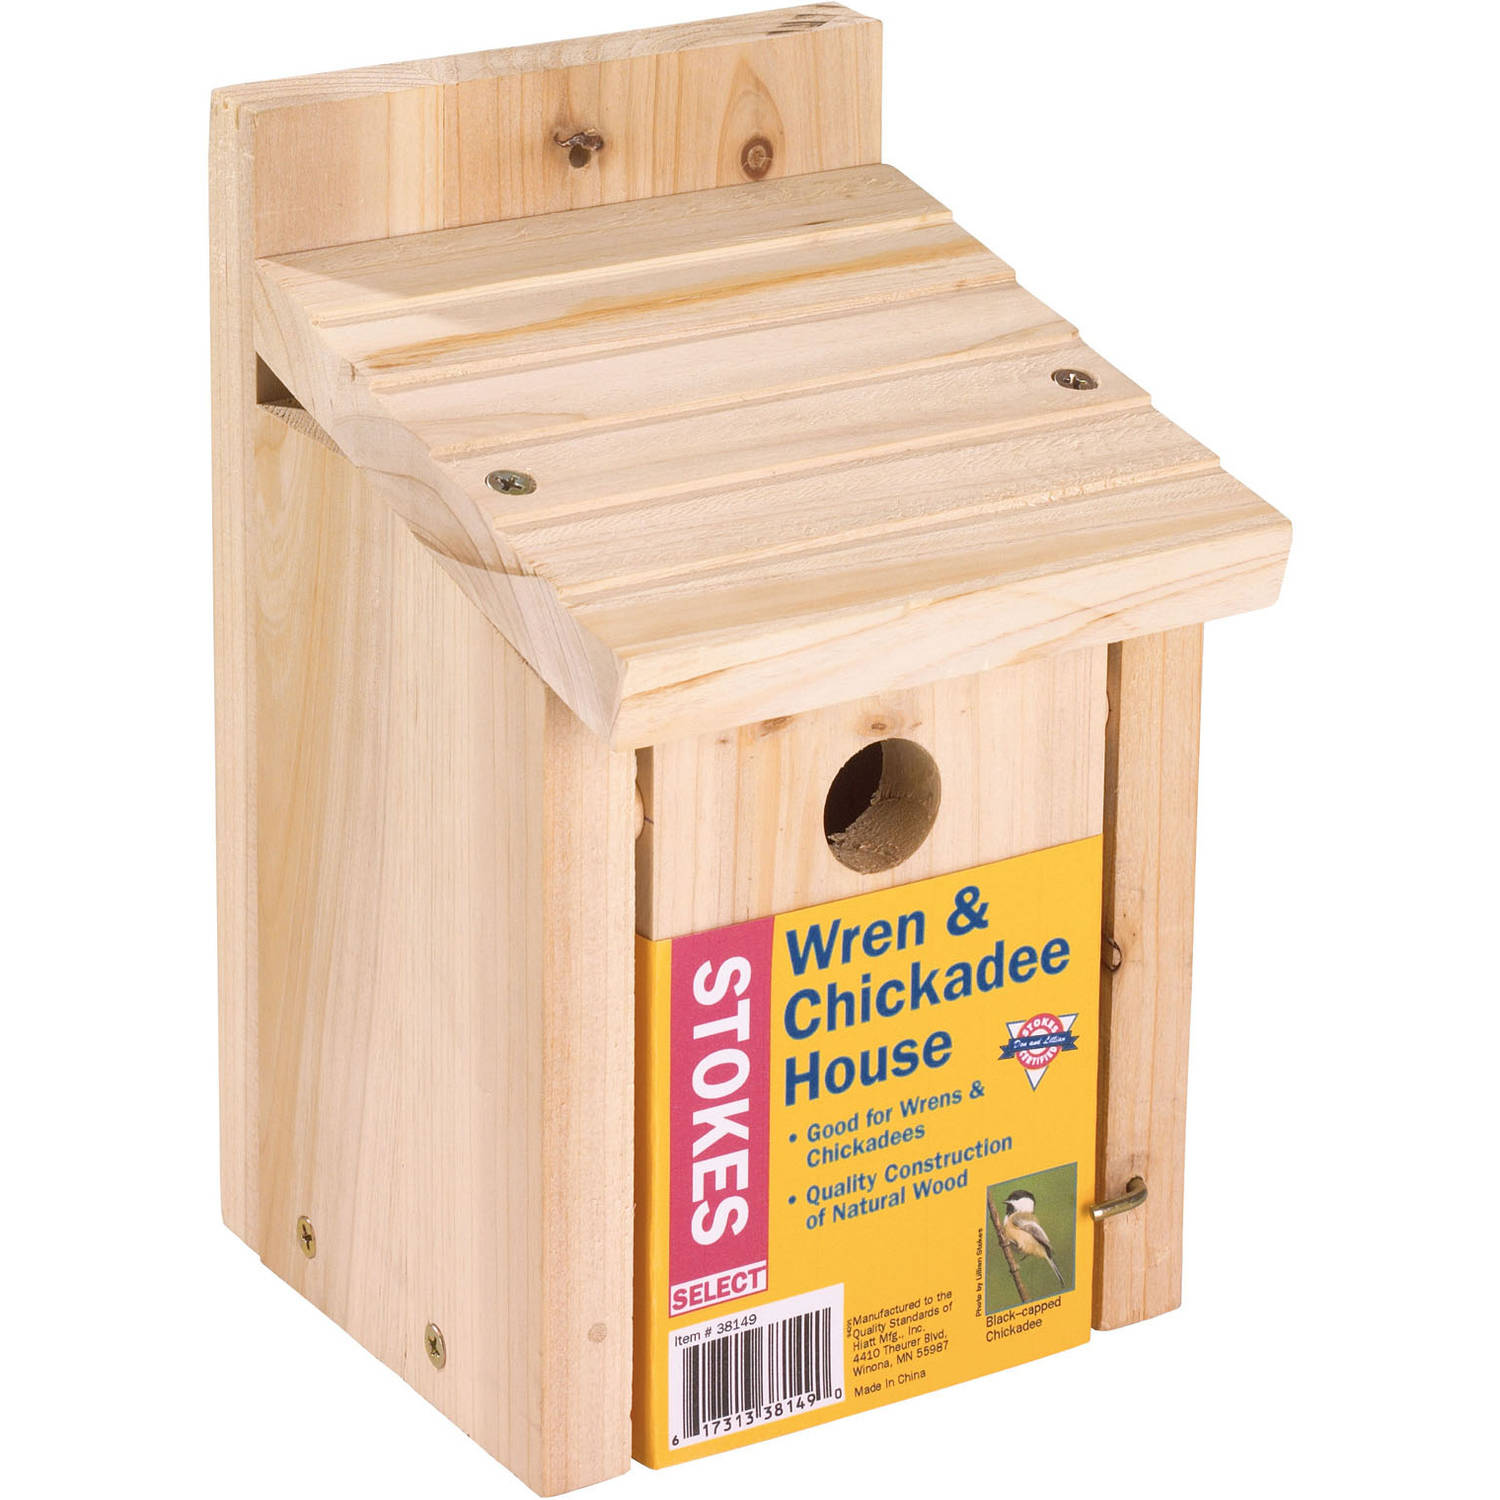 Stokes Select Wren and Chickadee Nesting Bird House, Natural Wood